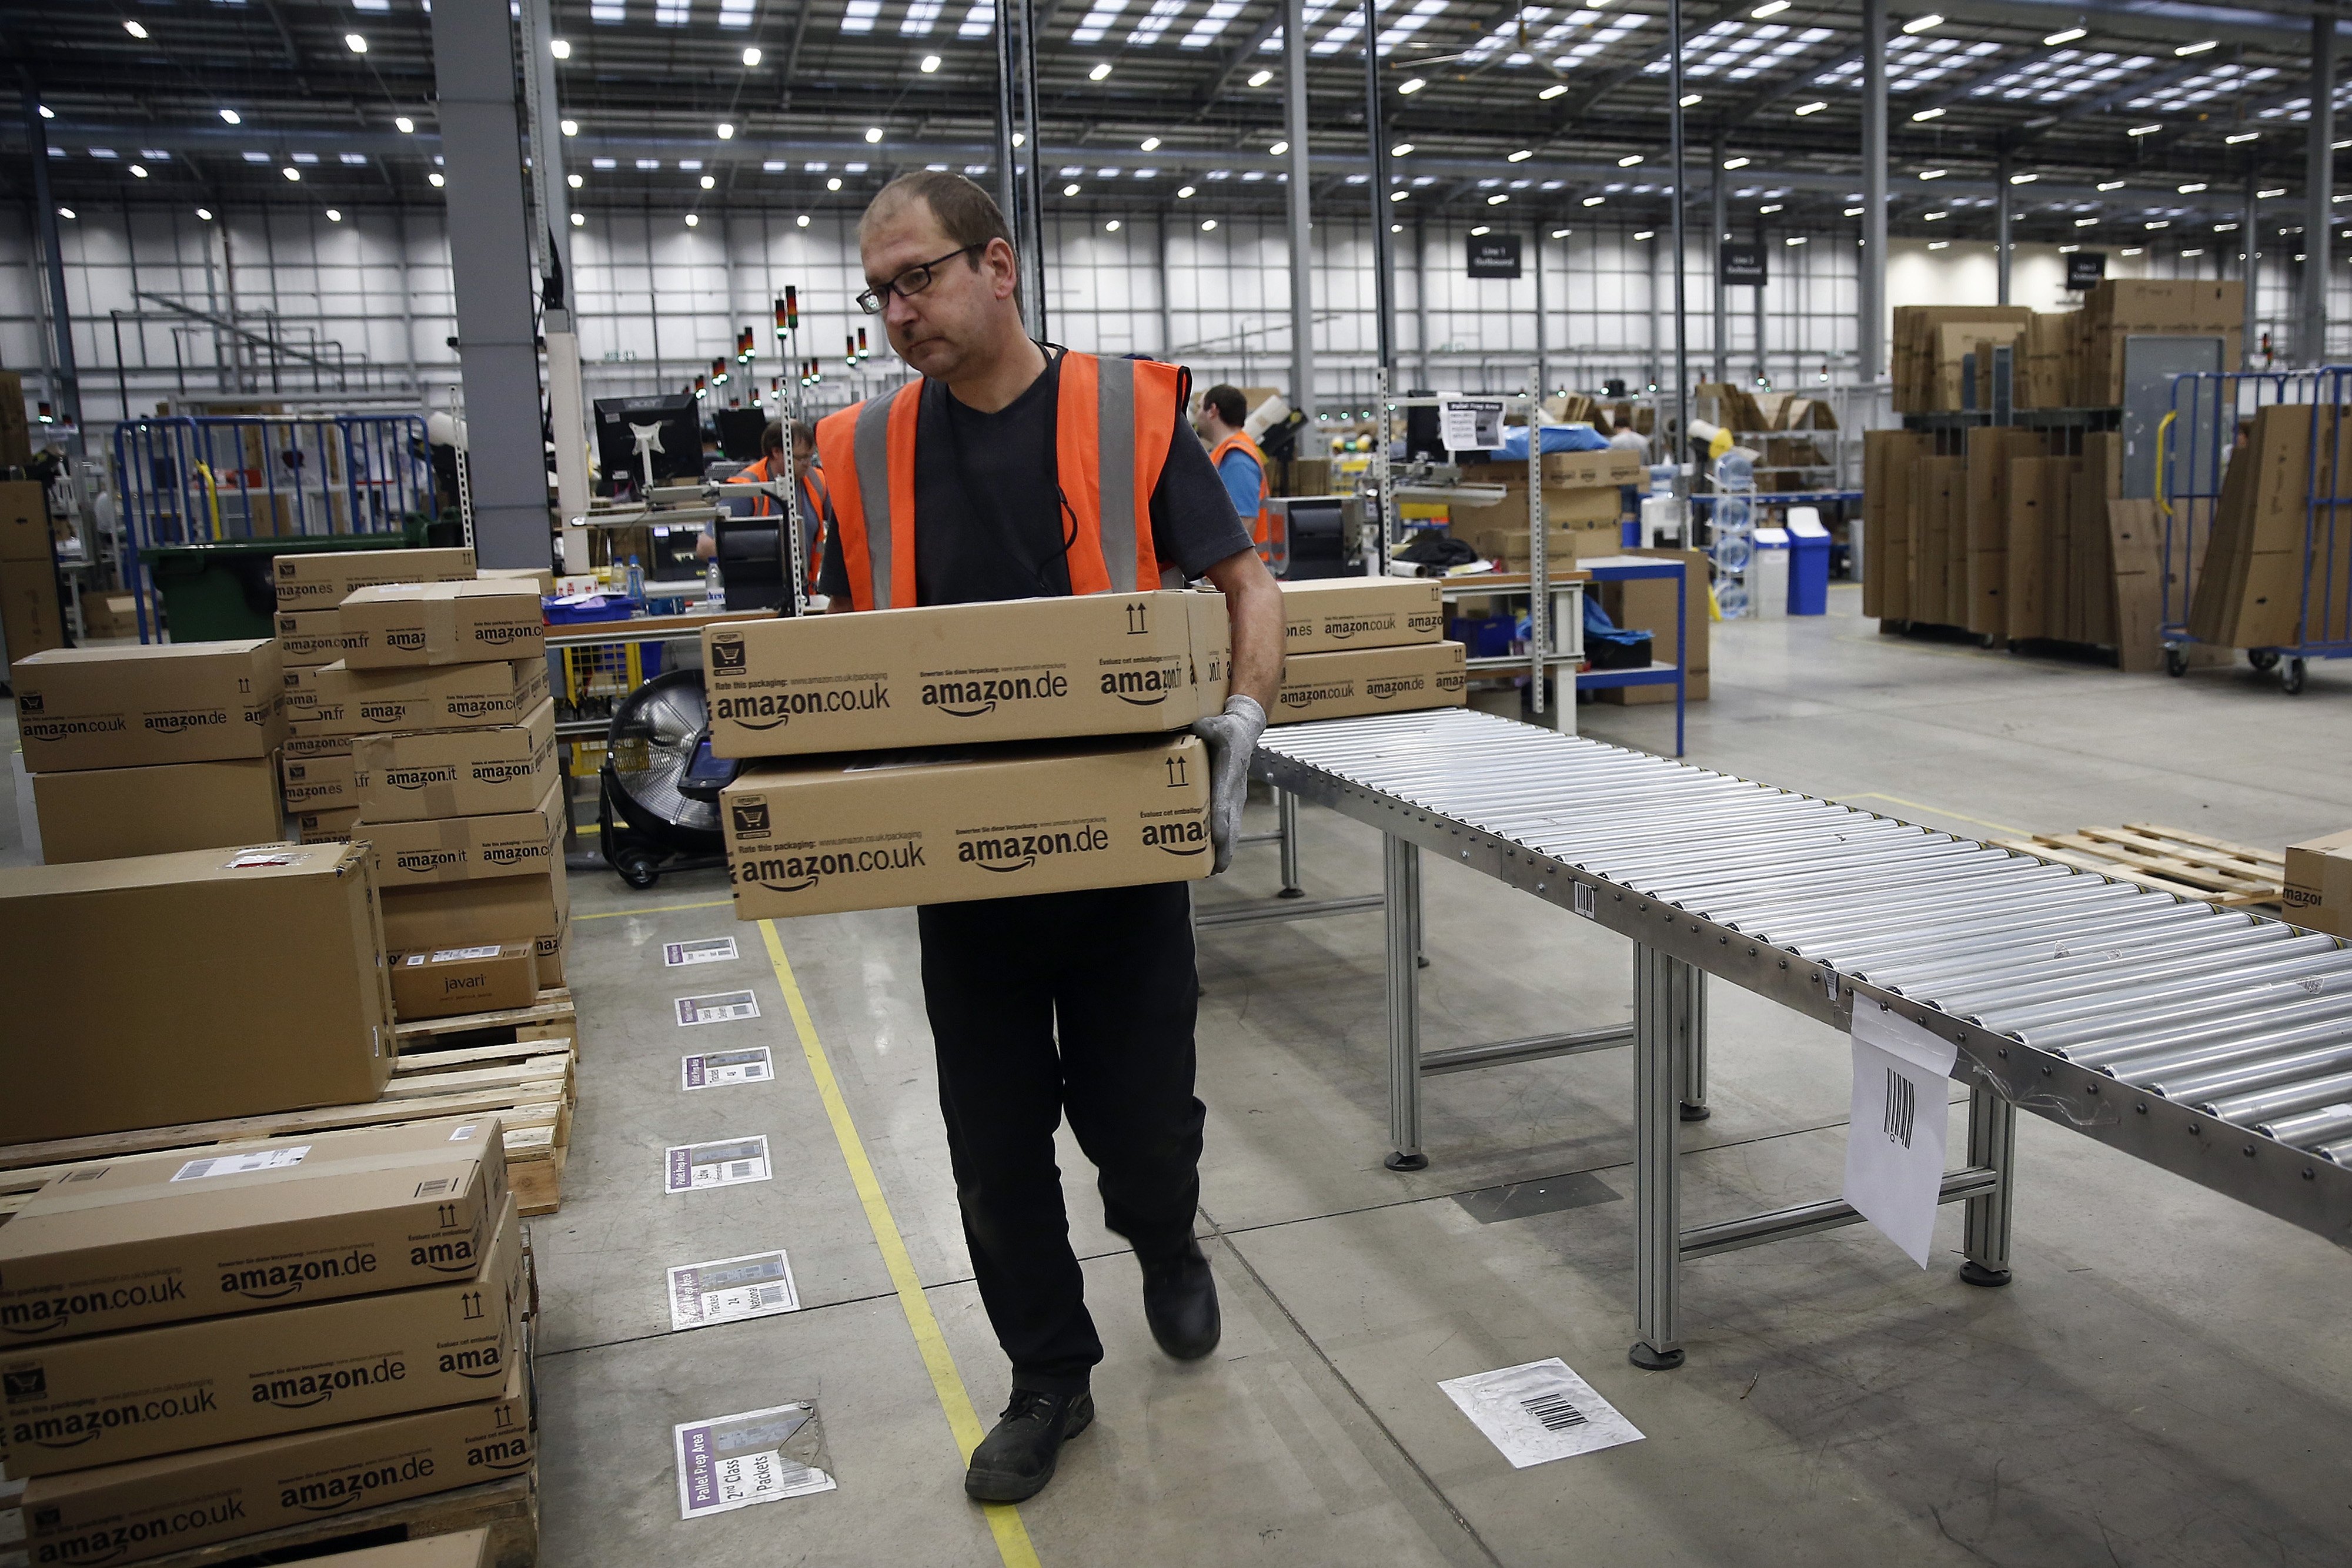 A employee sorts packaged customer orders ahead of shipping at one of Amazon.com Inc.'s fulfillment centers.